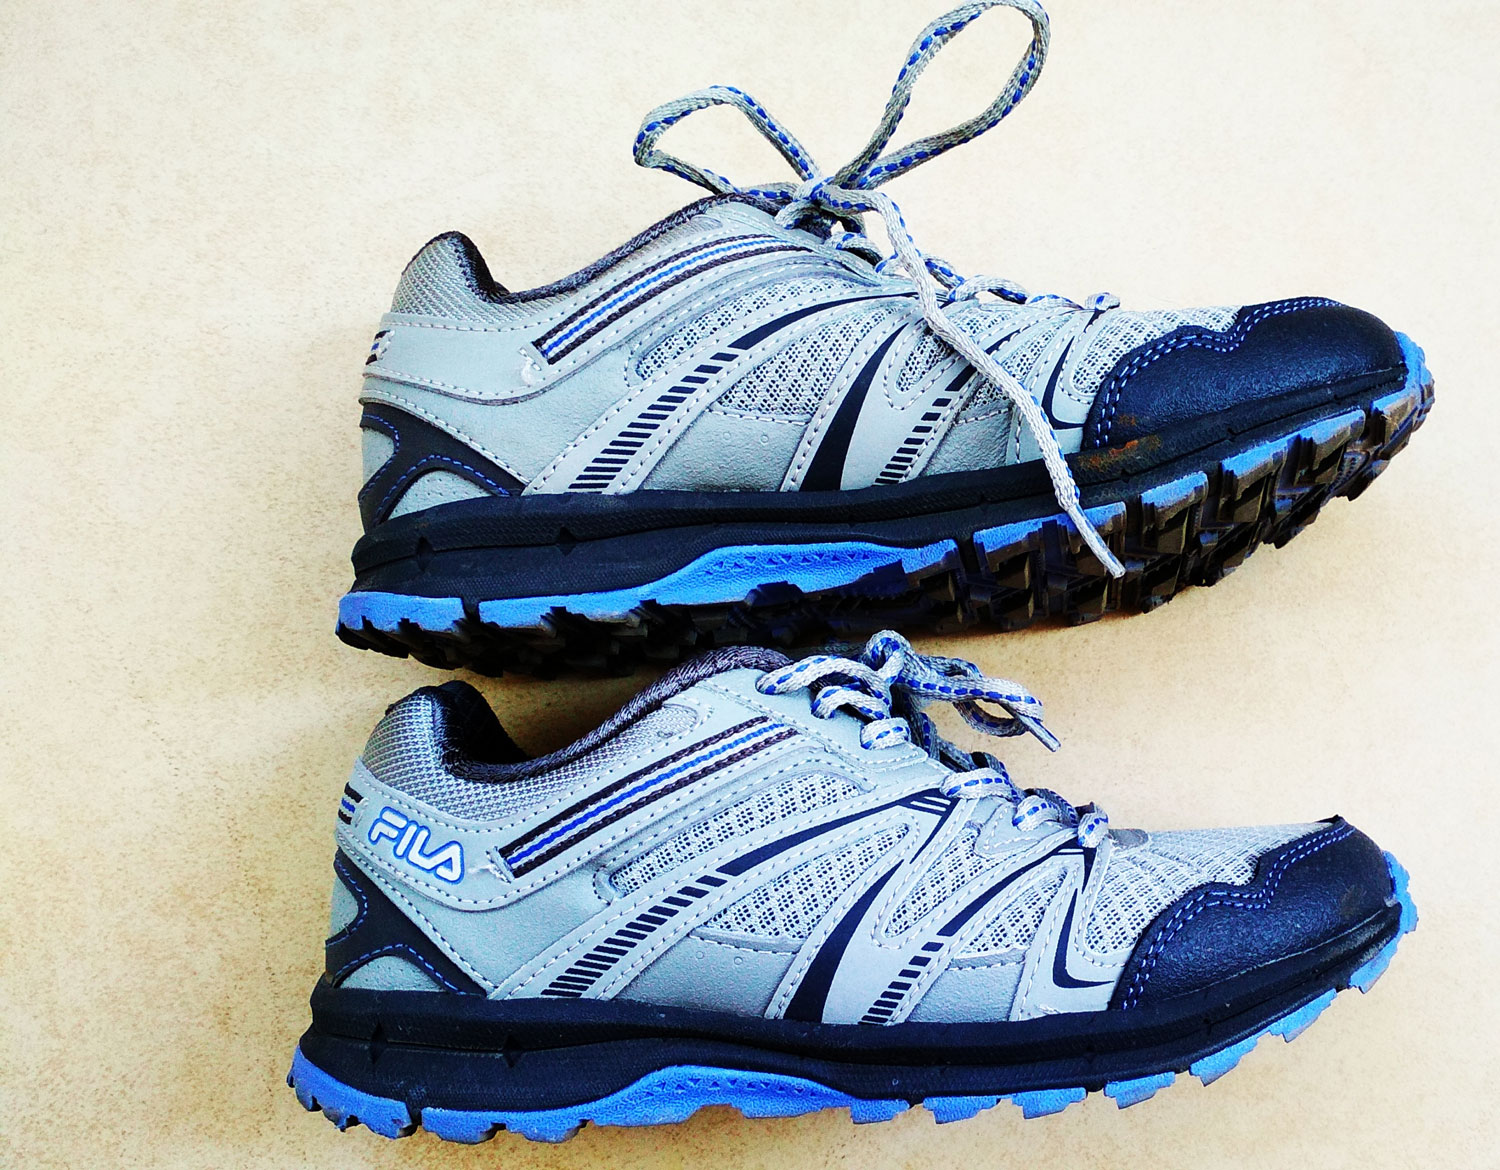 860v5 Grey Blue, Runnerinn